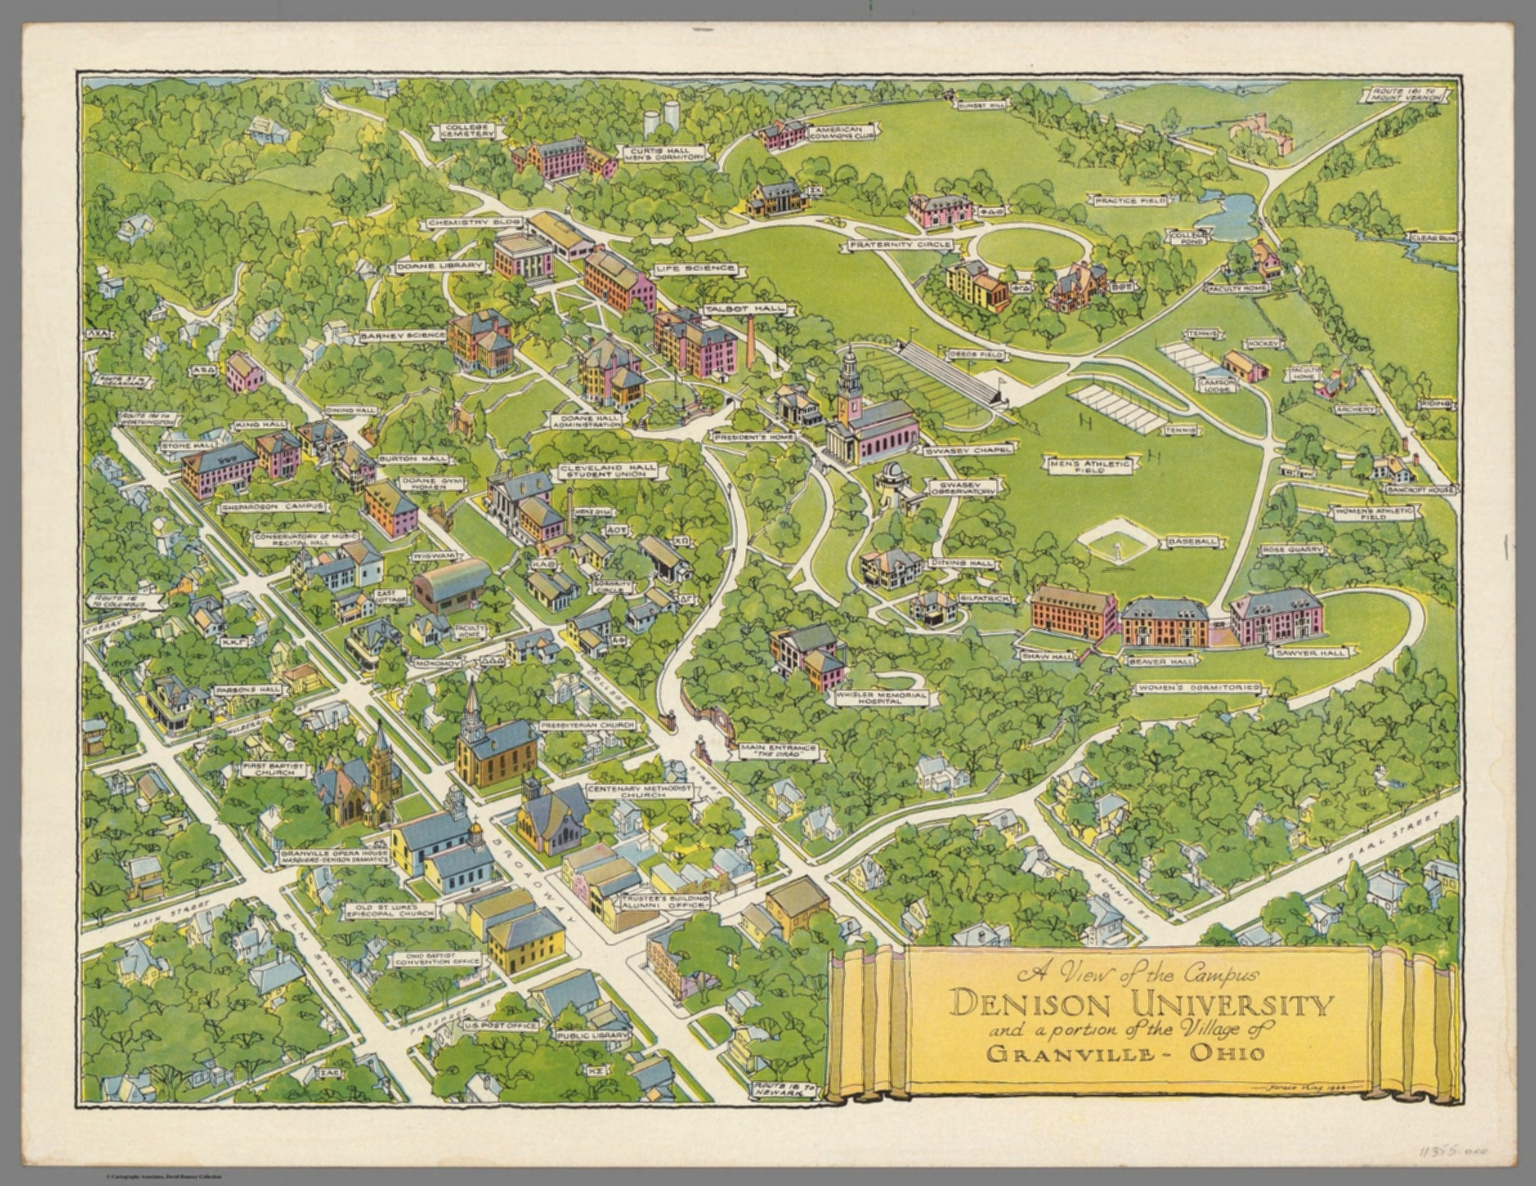 denison university campus map A View Of The Campus Denison University David Rumsey denison university campus map